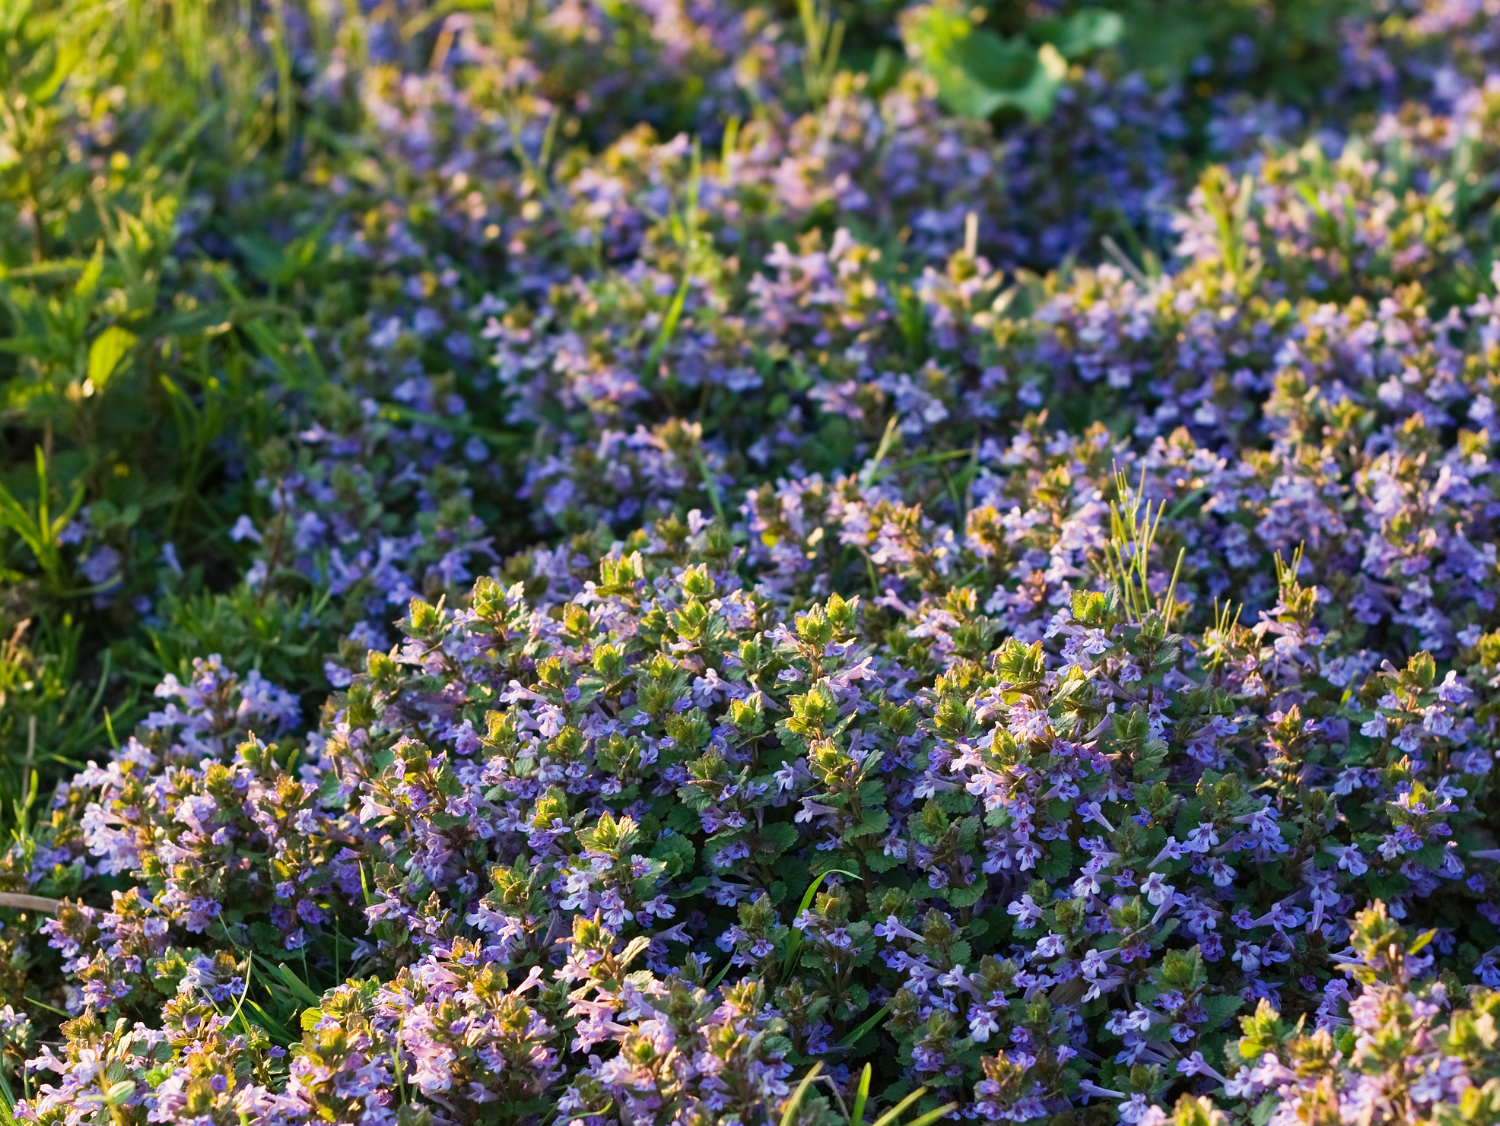 Ground Ivy - A Foraging Guide to Its Food, Medicine and Other Uses